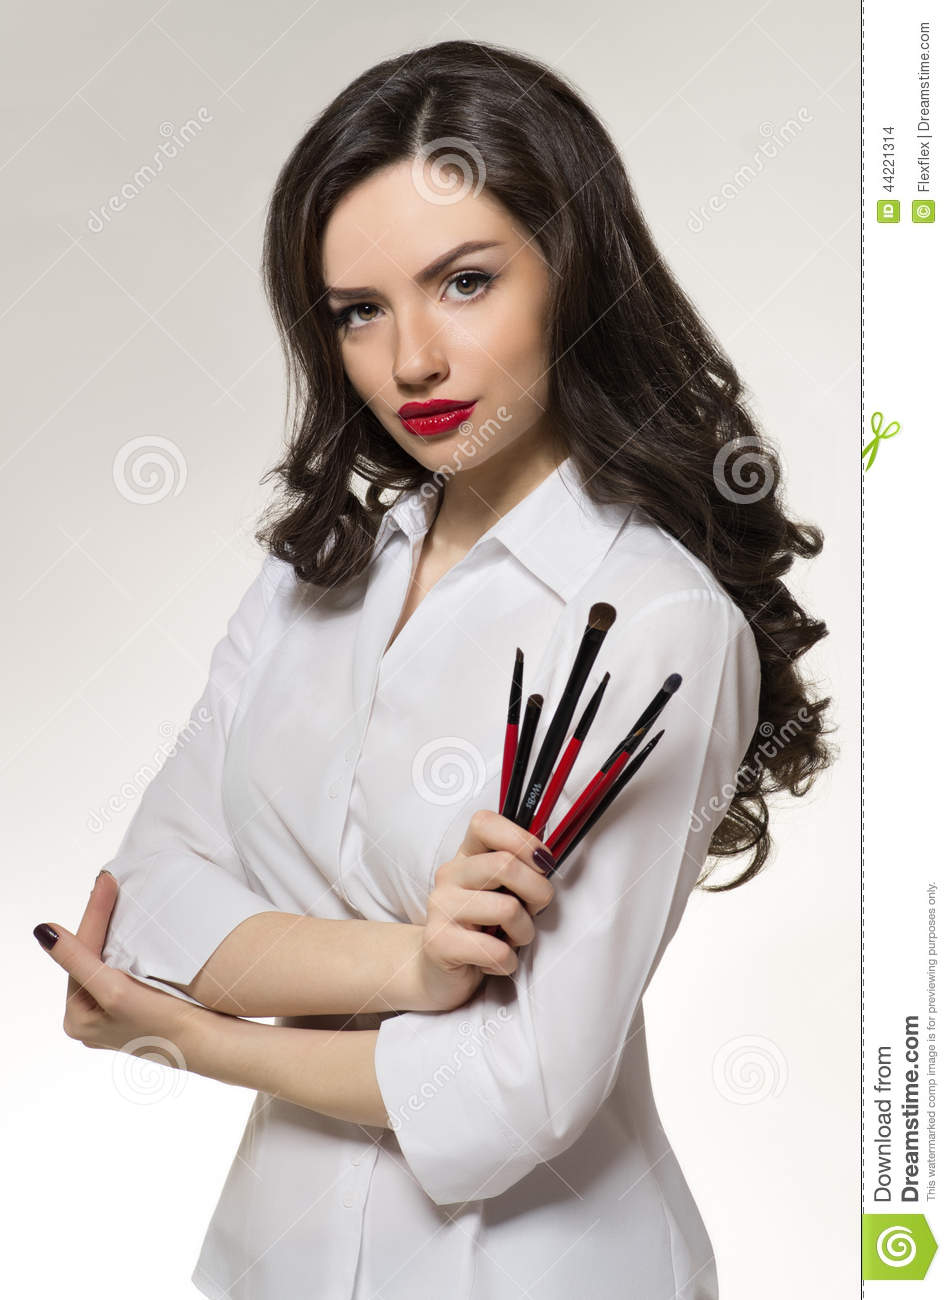 Beauty salon makeup artist with professional brushes stock for Photo salon